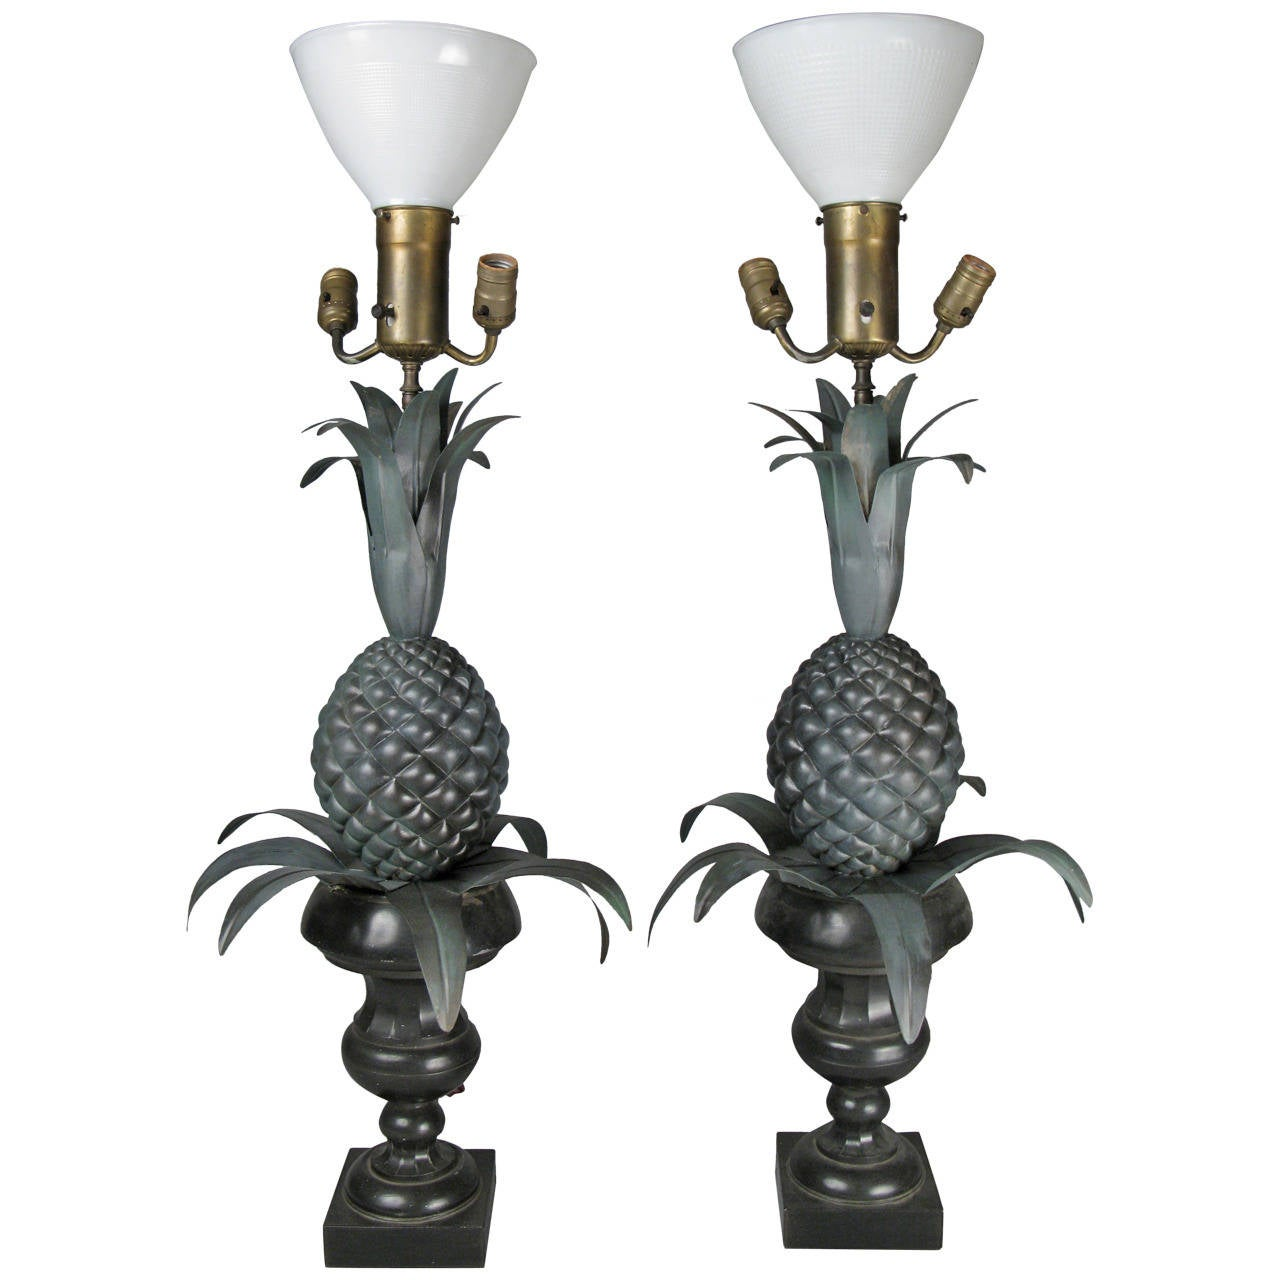 Vintage Pair of Large Pineapple Form Lamps